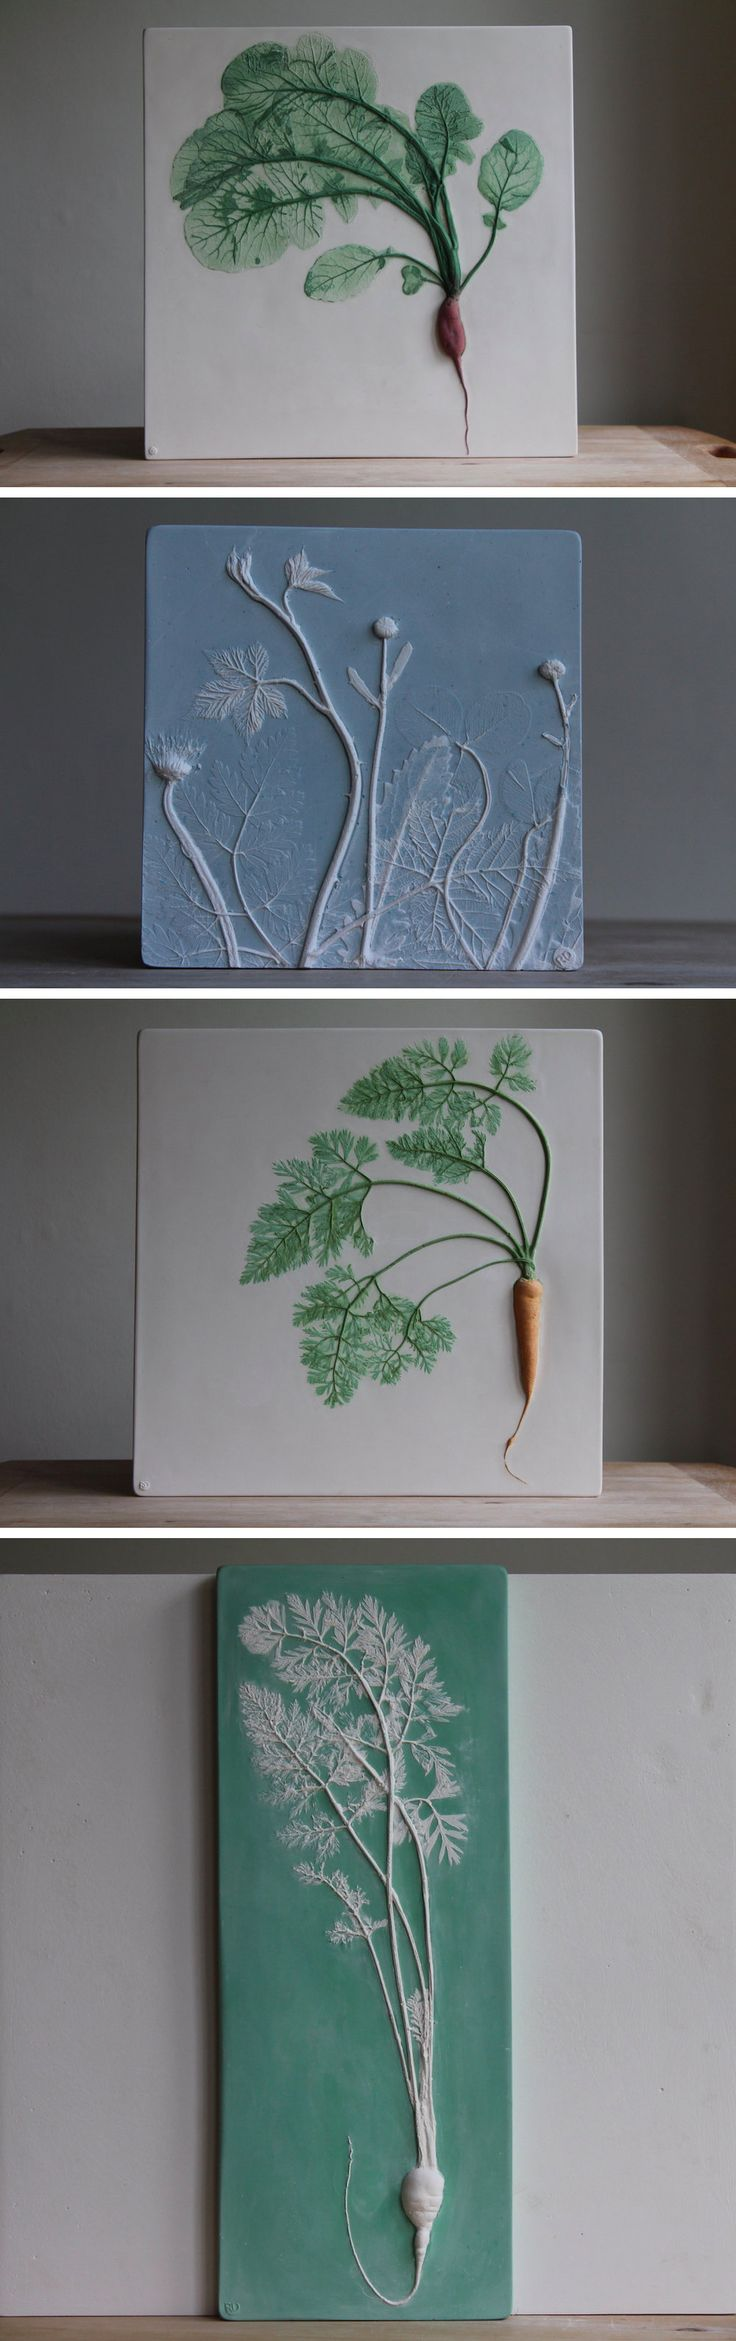 New Plaster Cast Tiles That Immortalize Flowers and Veggies by Rachel Dein